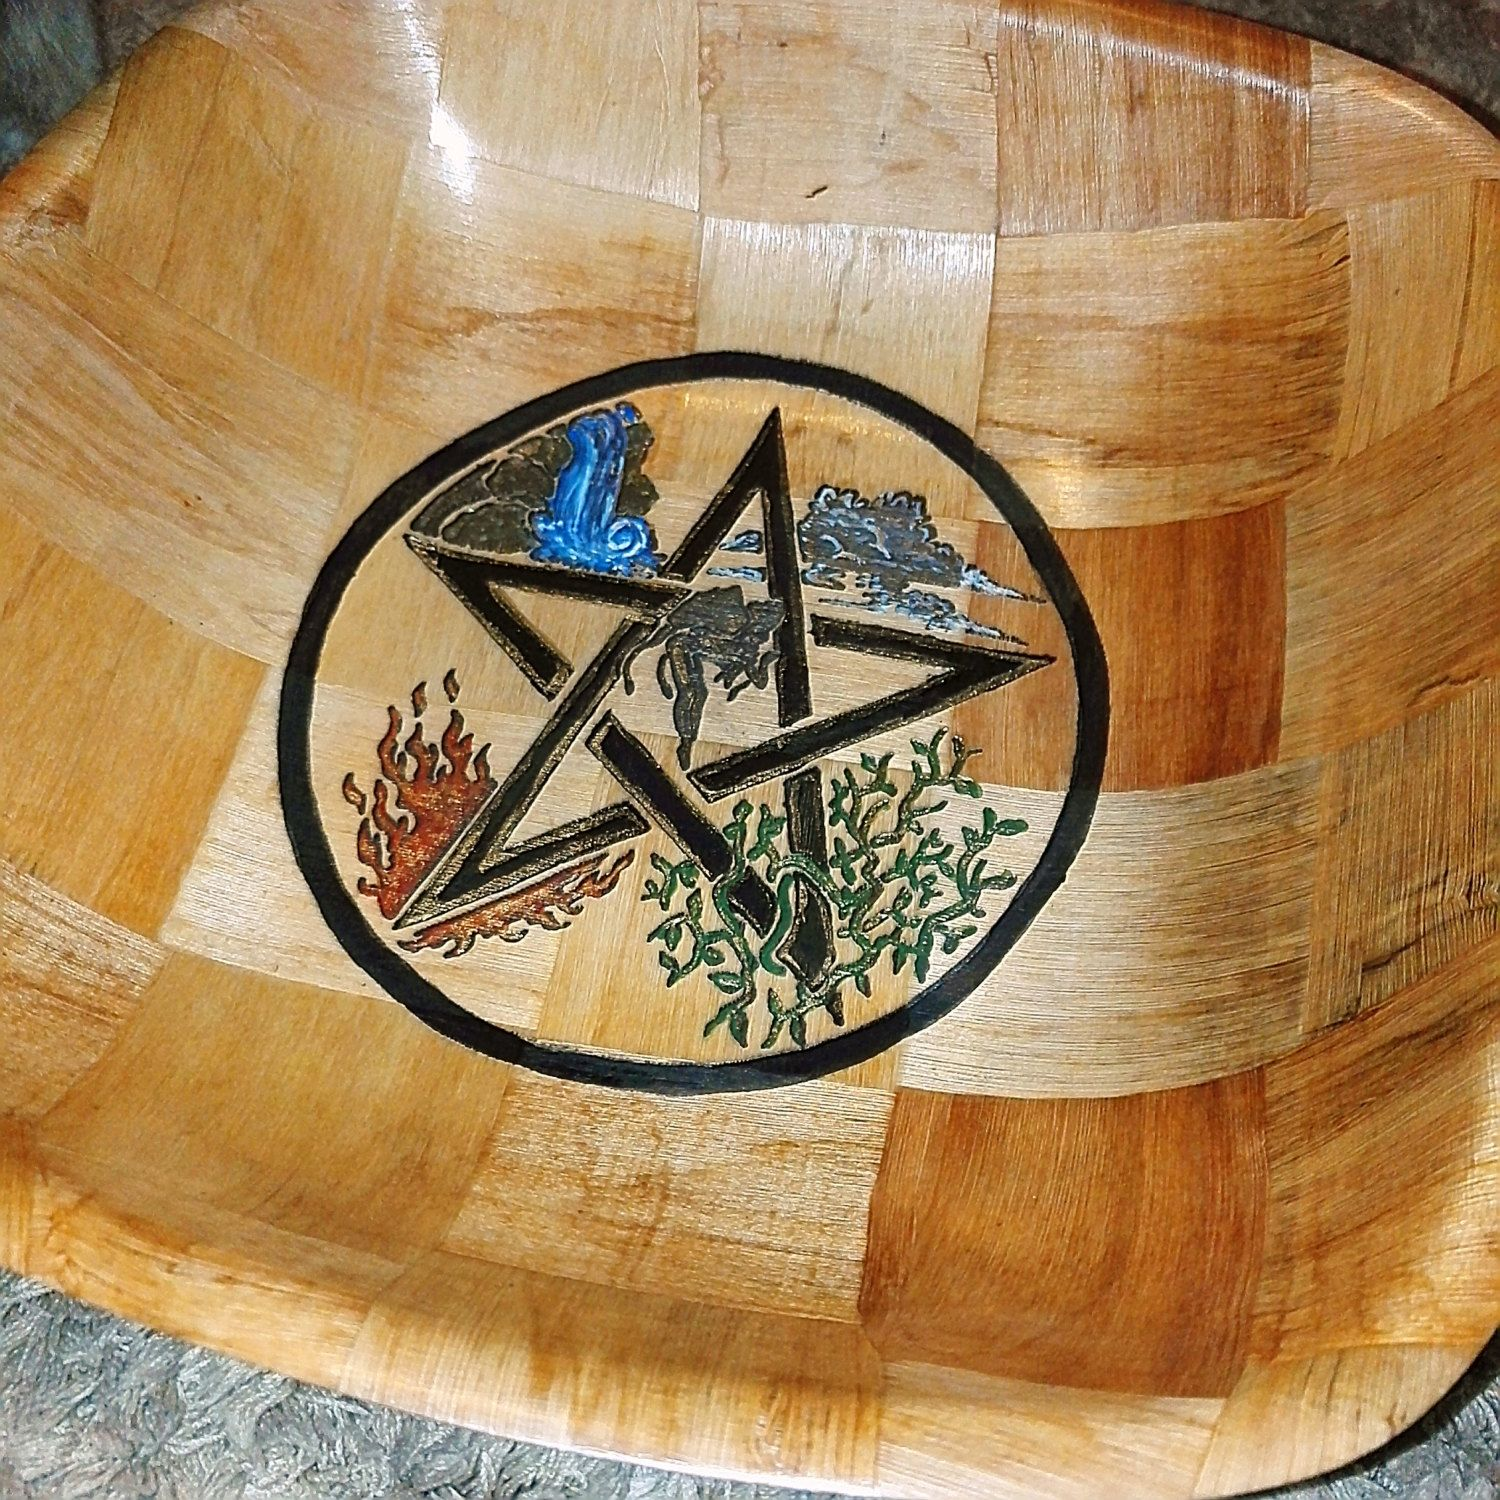 Pentagram wicca Pagan Viking  NATURAL rustic hand painted handmade wooden bowl unique Home table decor #viking #pagan #homedecor #halloween